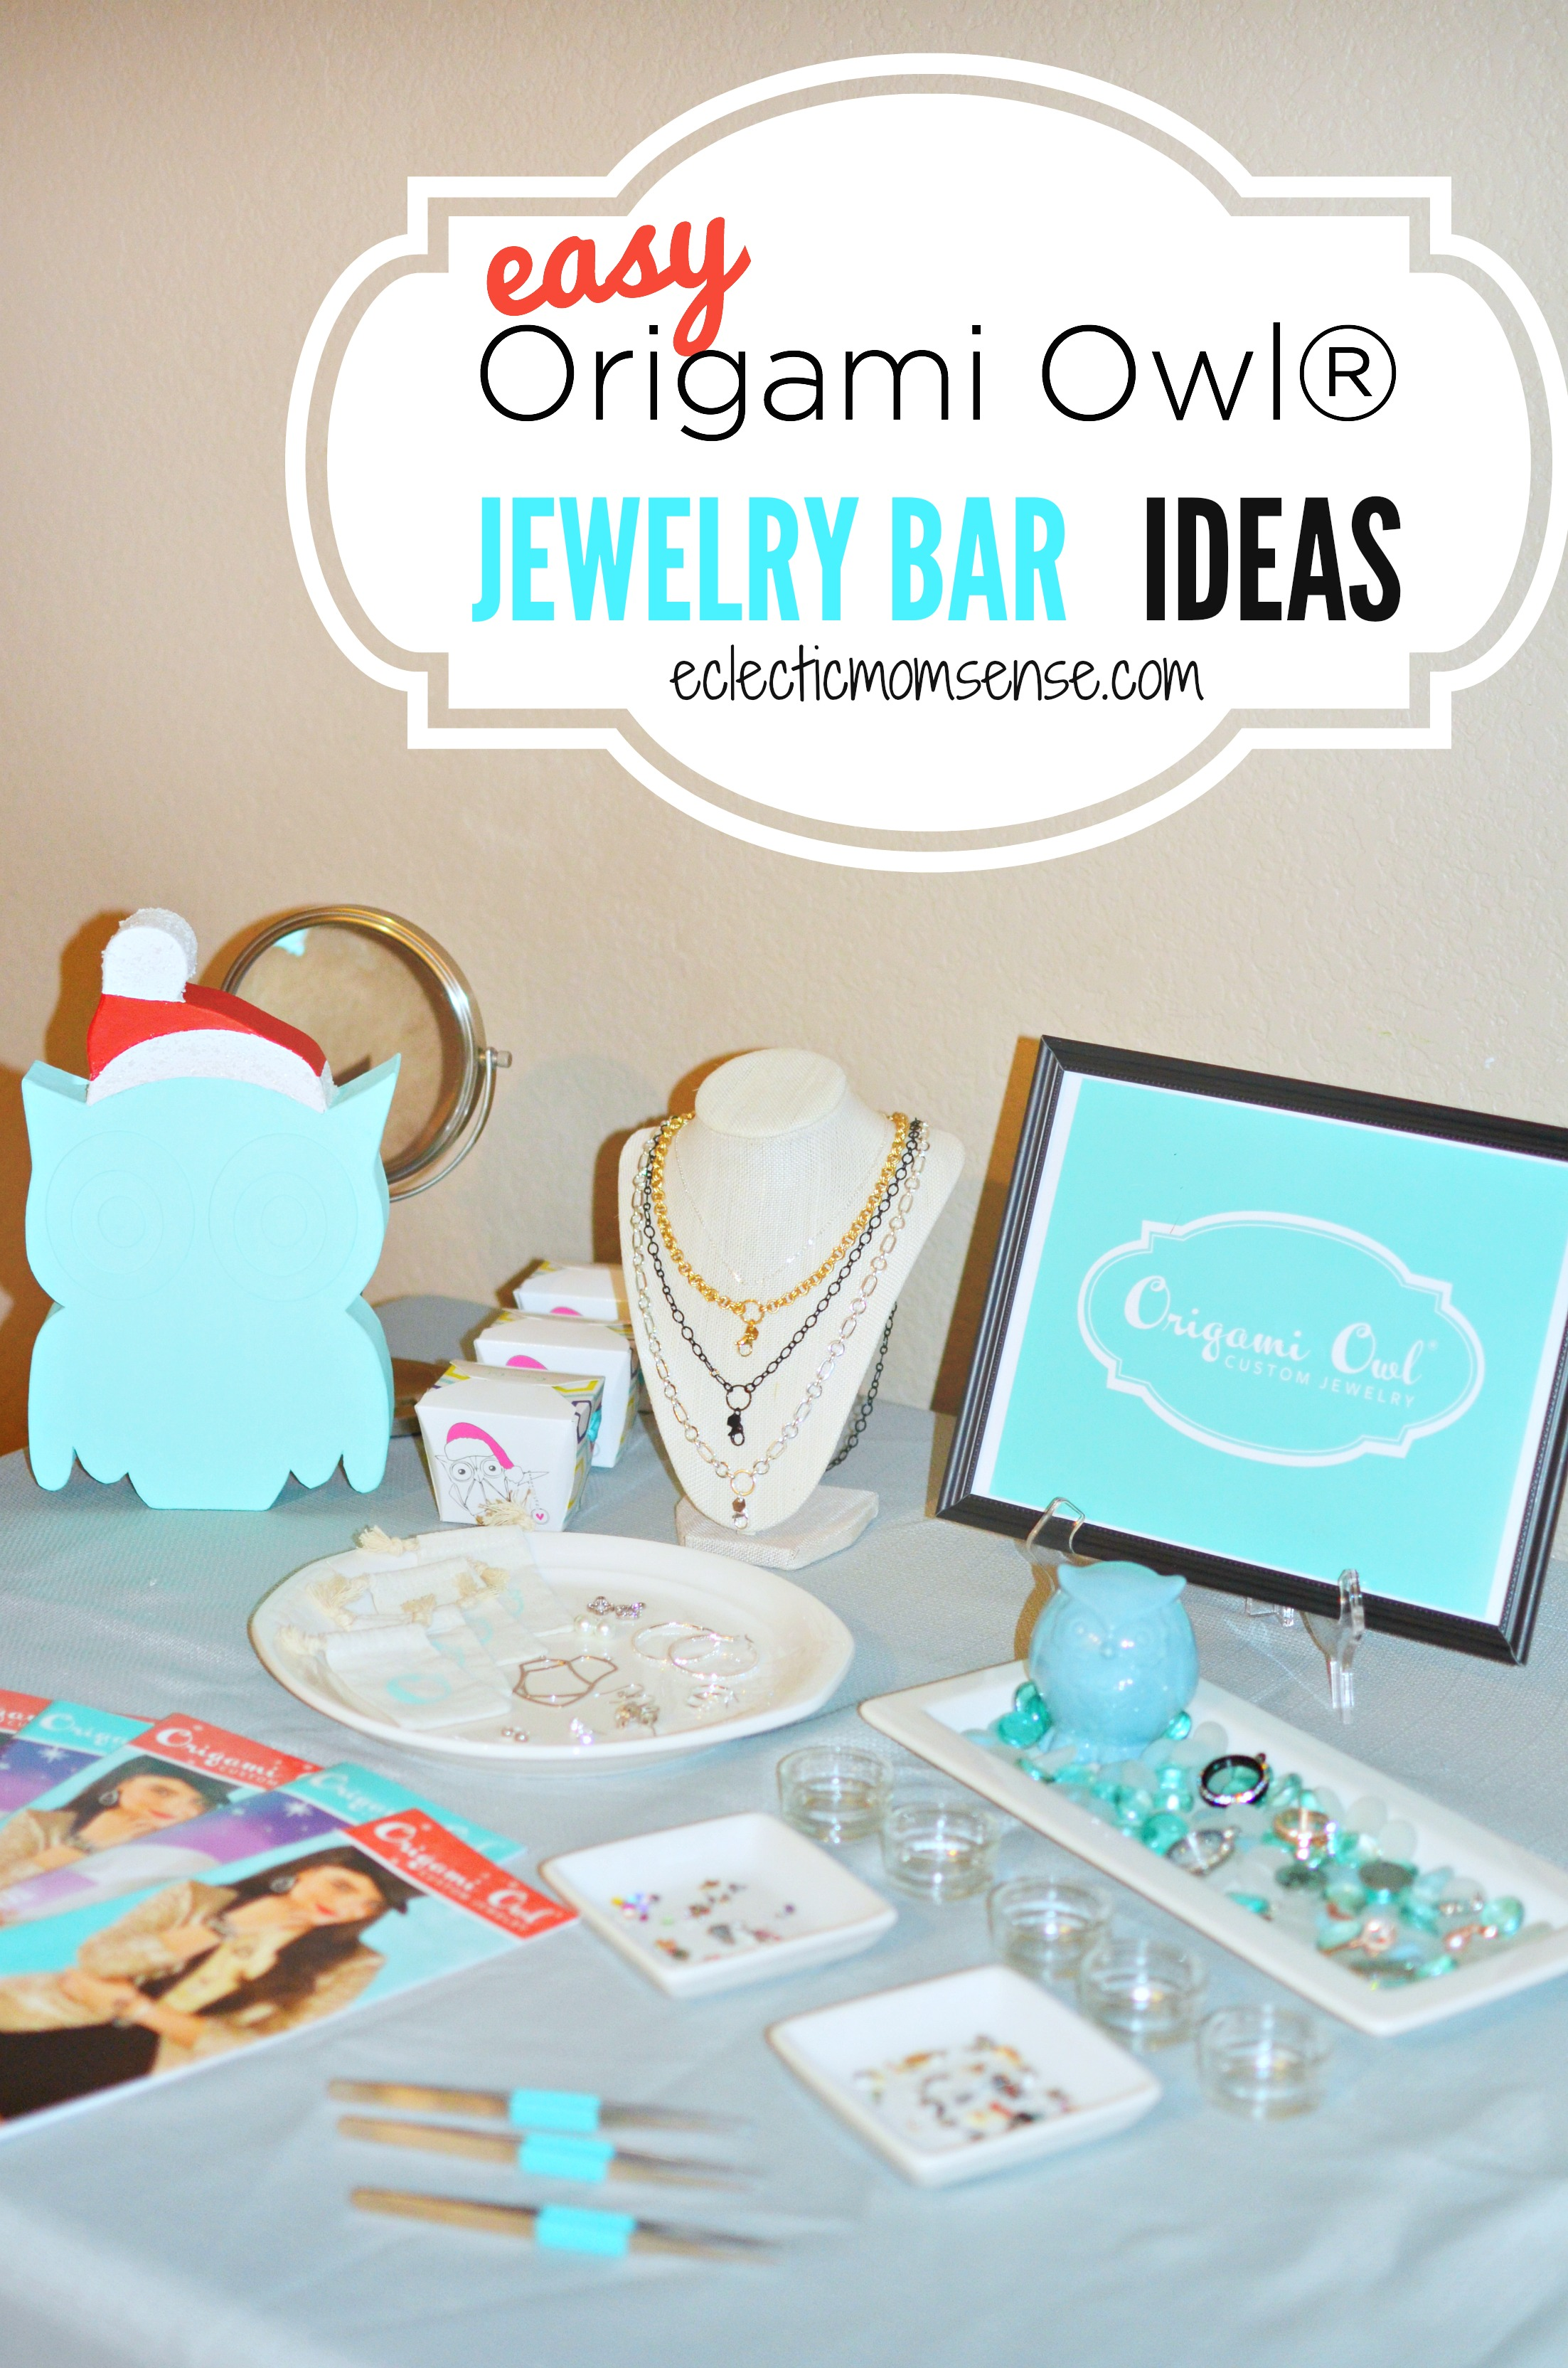 Origami Owl Jewelry Bar Ideas Eclectic Momsense